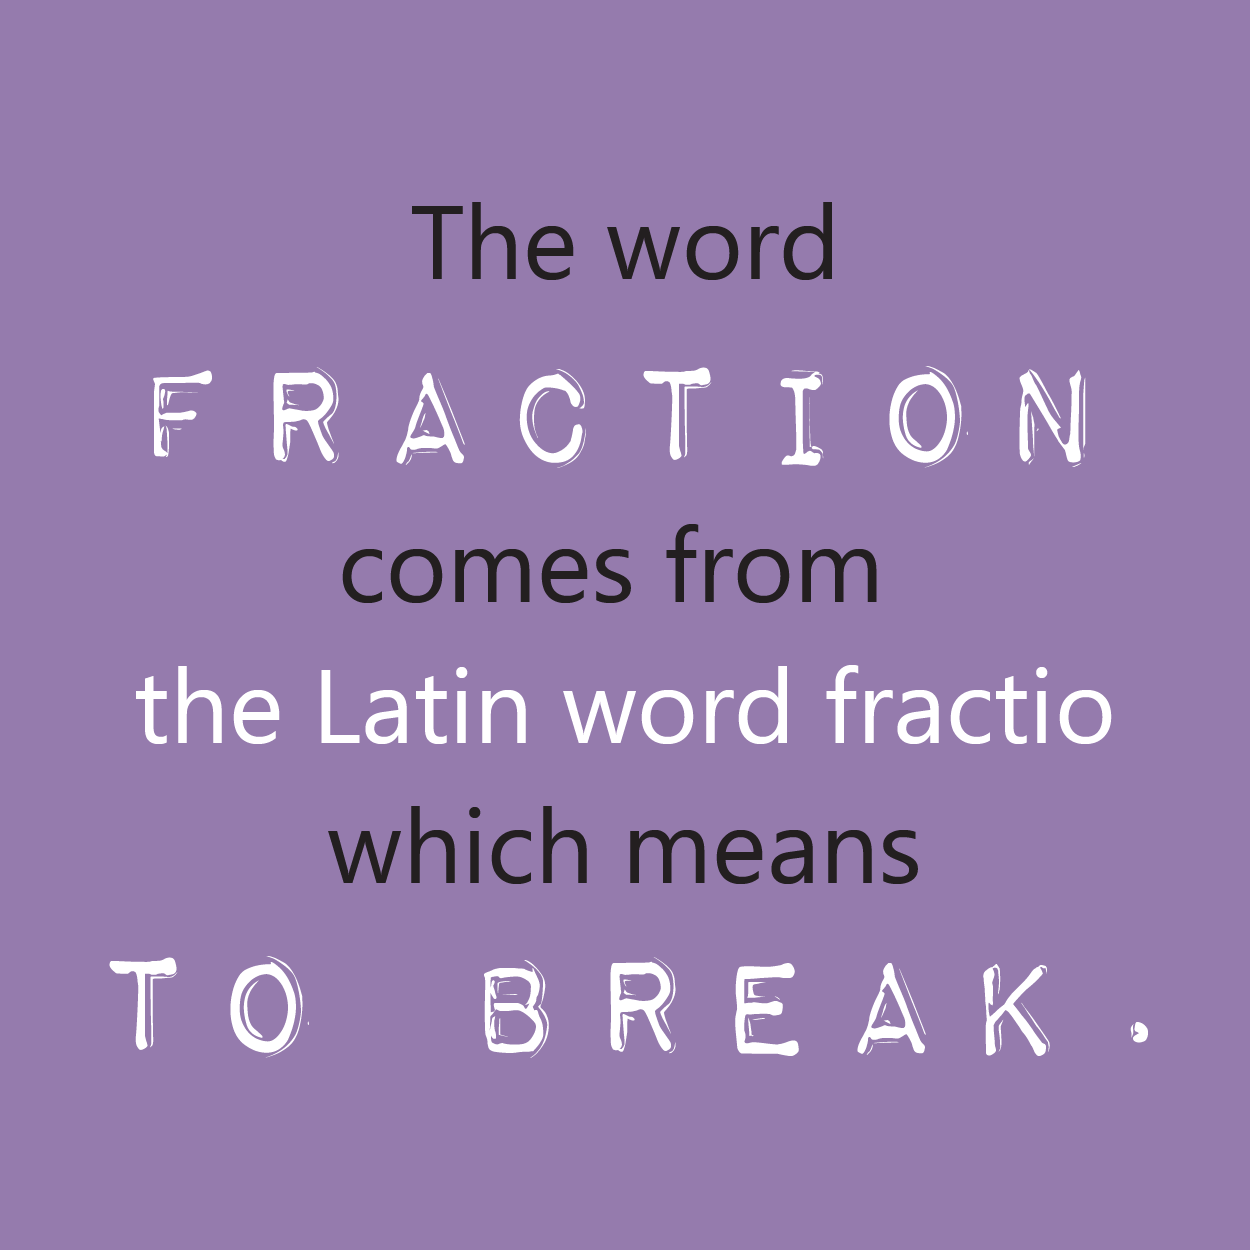 Here S A Fun Math Fact About The Word Fraction Did You